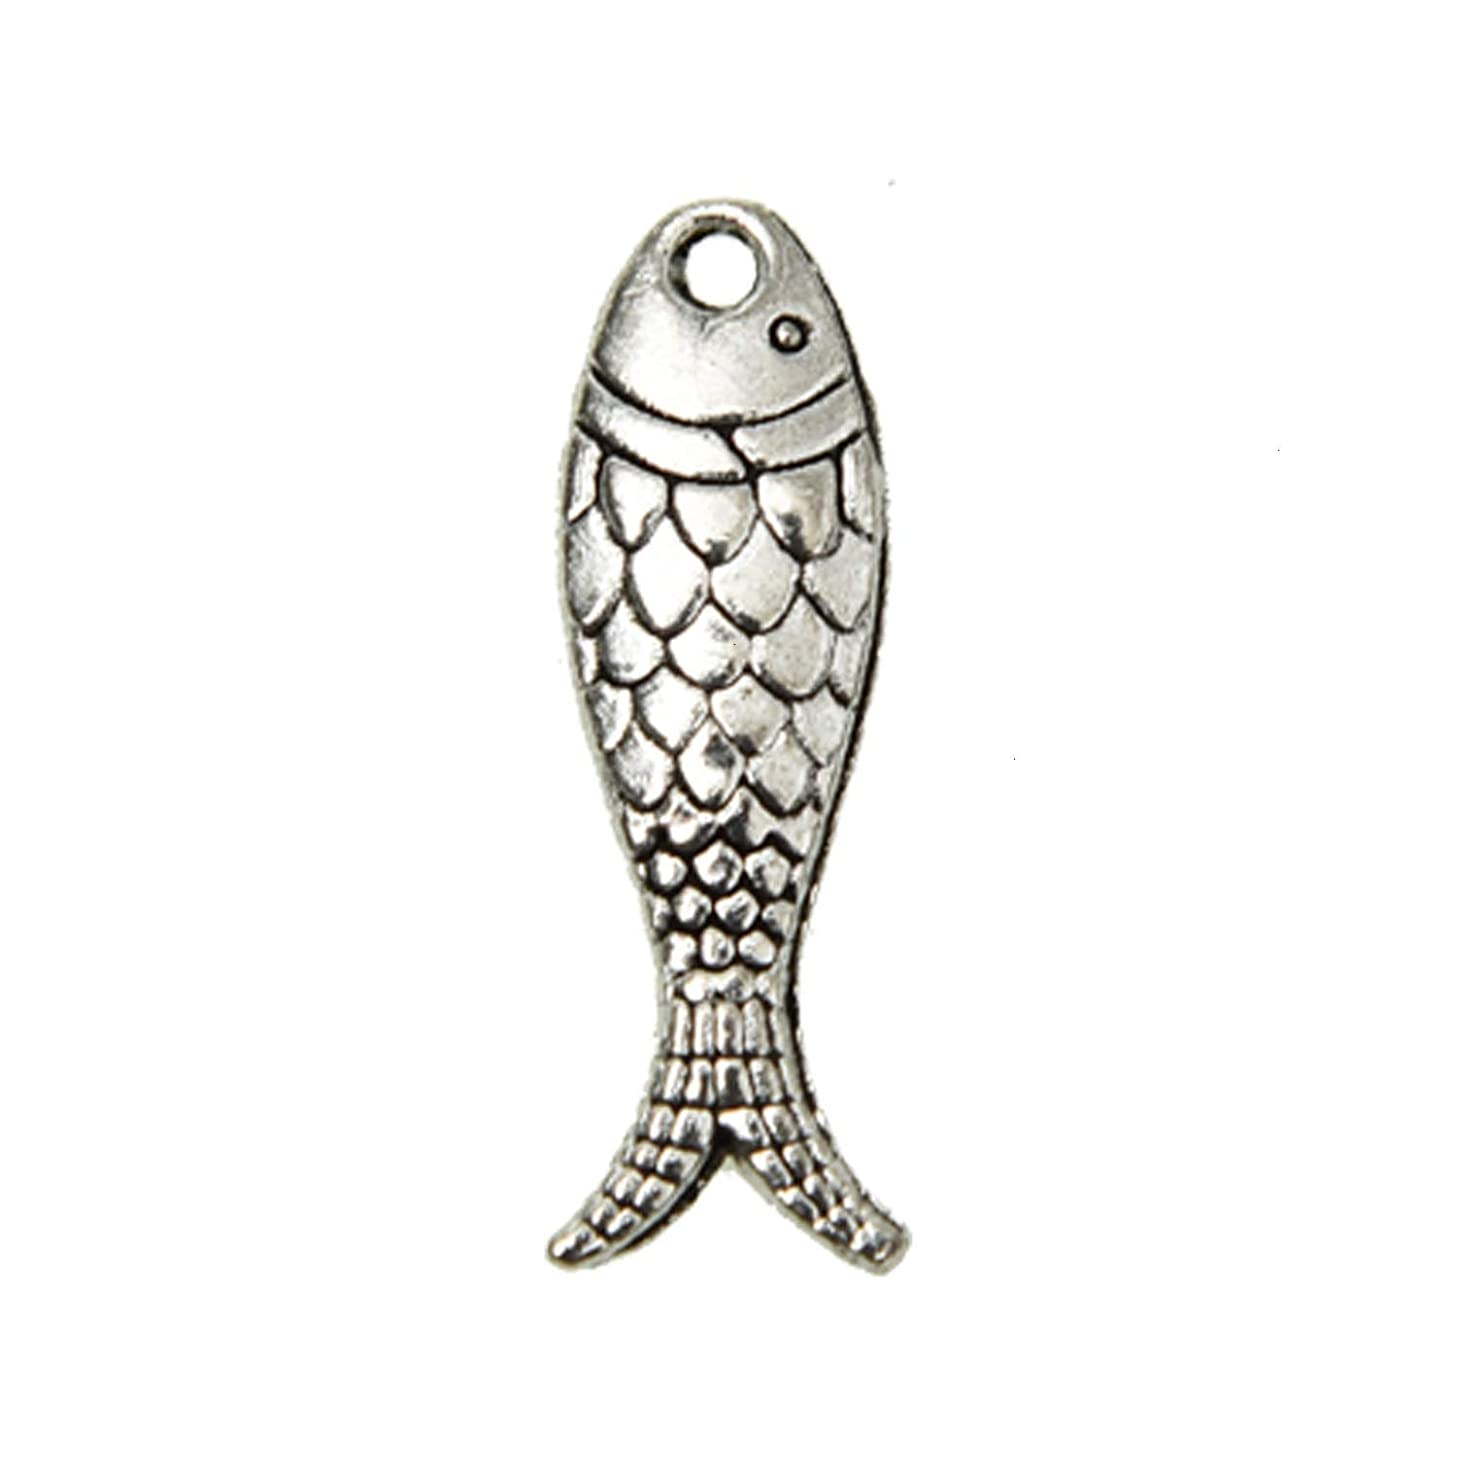 Monrocco 60Pcs Antique Silver Alloy Fish Charms Sea Animal Charms Pendant Ocean Fish Charm Jewelry Findings for Jewelry Making Necklace Bracelet 23.5x7mm